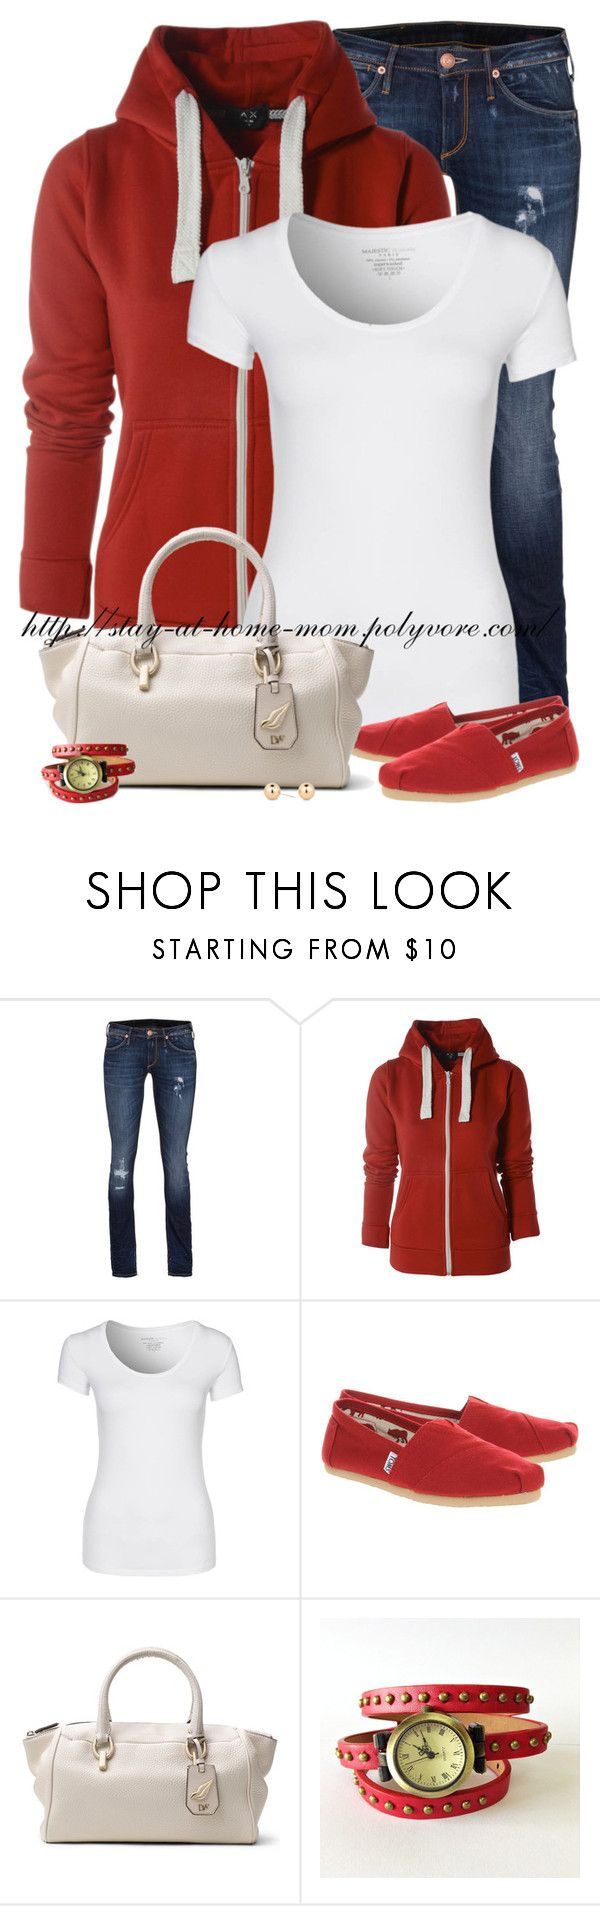 """AX Paris Red Hoody & Red Toms!"" by stay-at-home-mom ❤ liked on Polyvore featuring True Religion, AX Paris, Majestic, TOMS, Diane Von Furstenberg and Principles by Ben de Lisi"